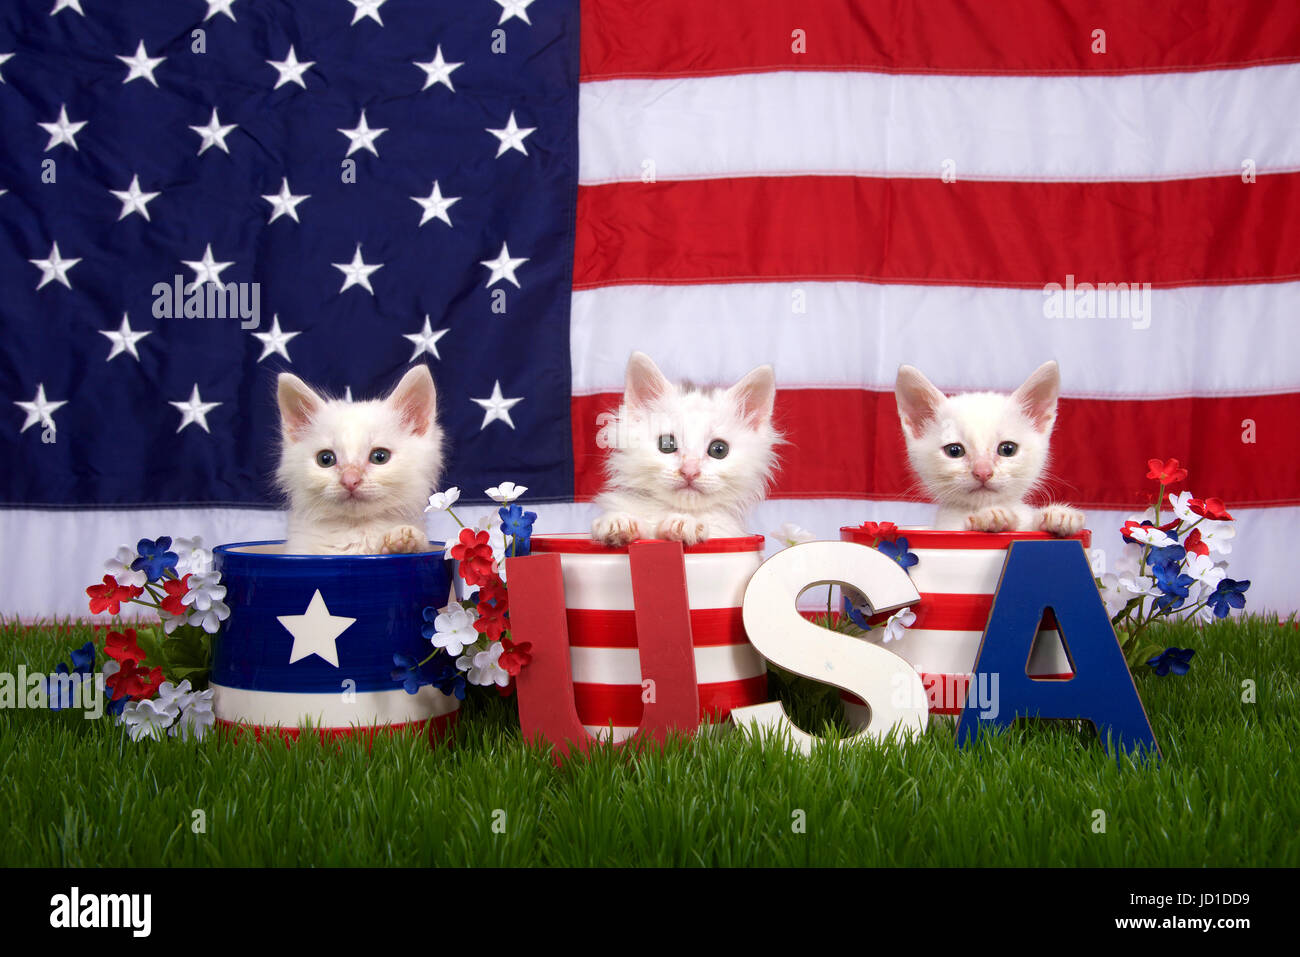 8338d6546dc5 Three fluffy white small kittens sitting in patriotic designed pots on  green grass